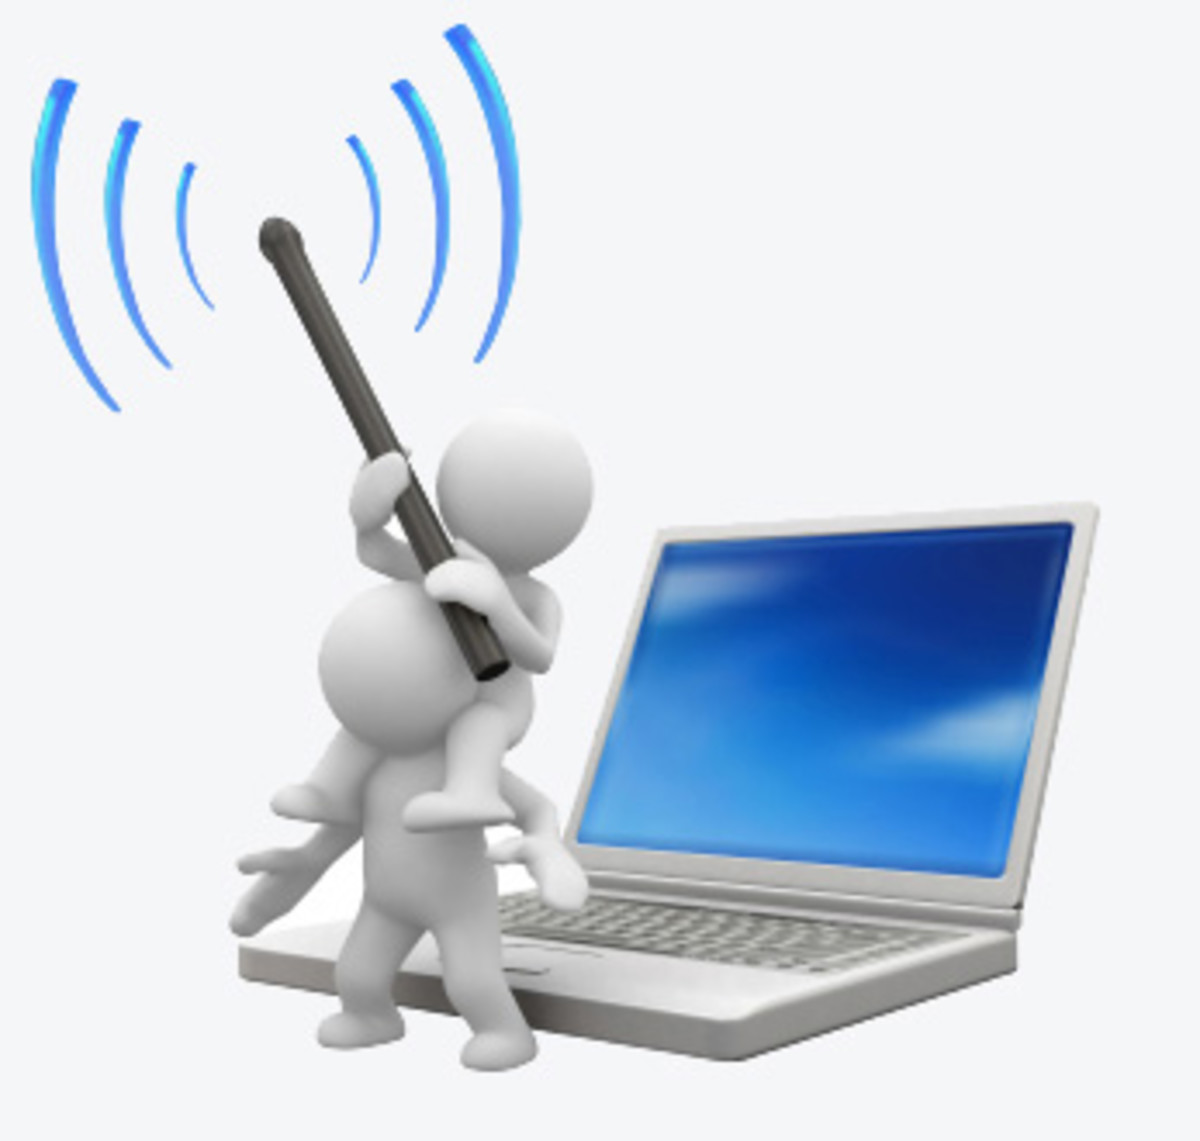 The pros and cons of Wireless networks to business firms